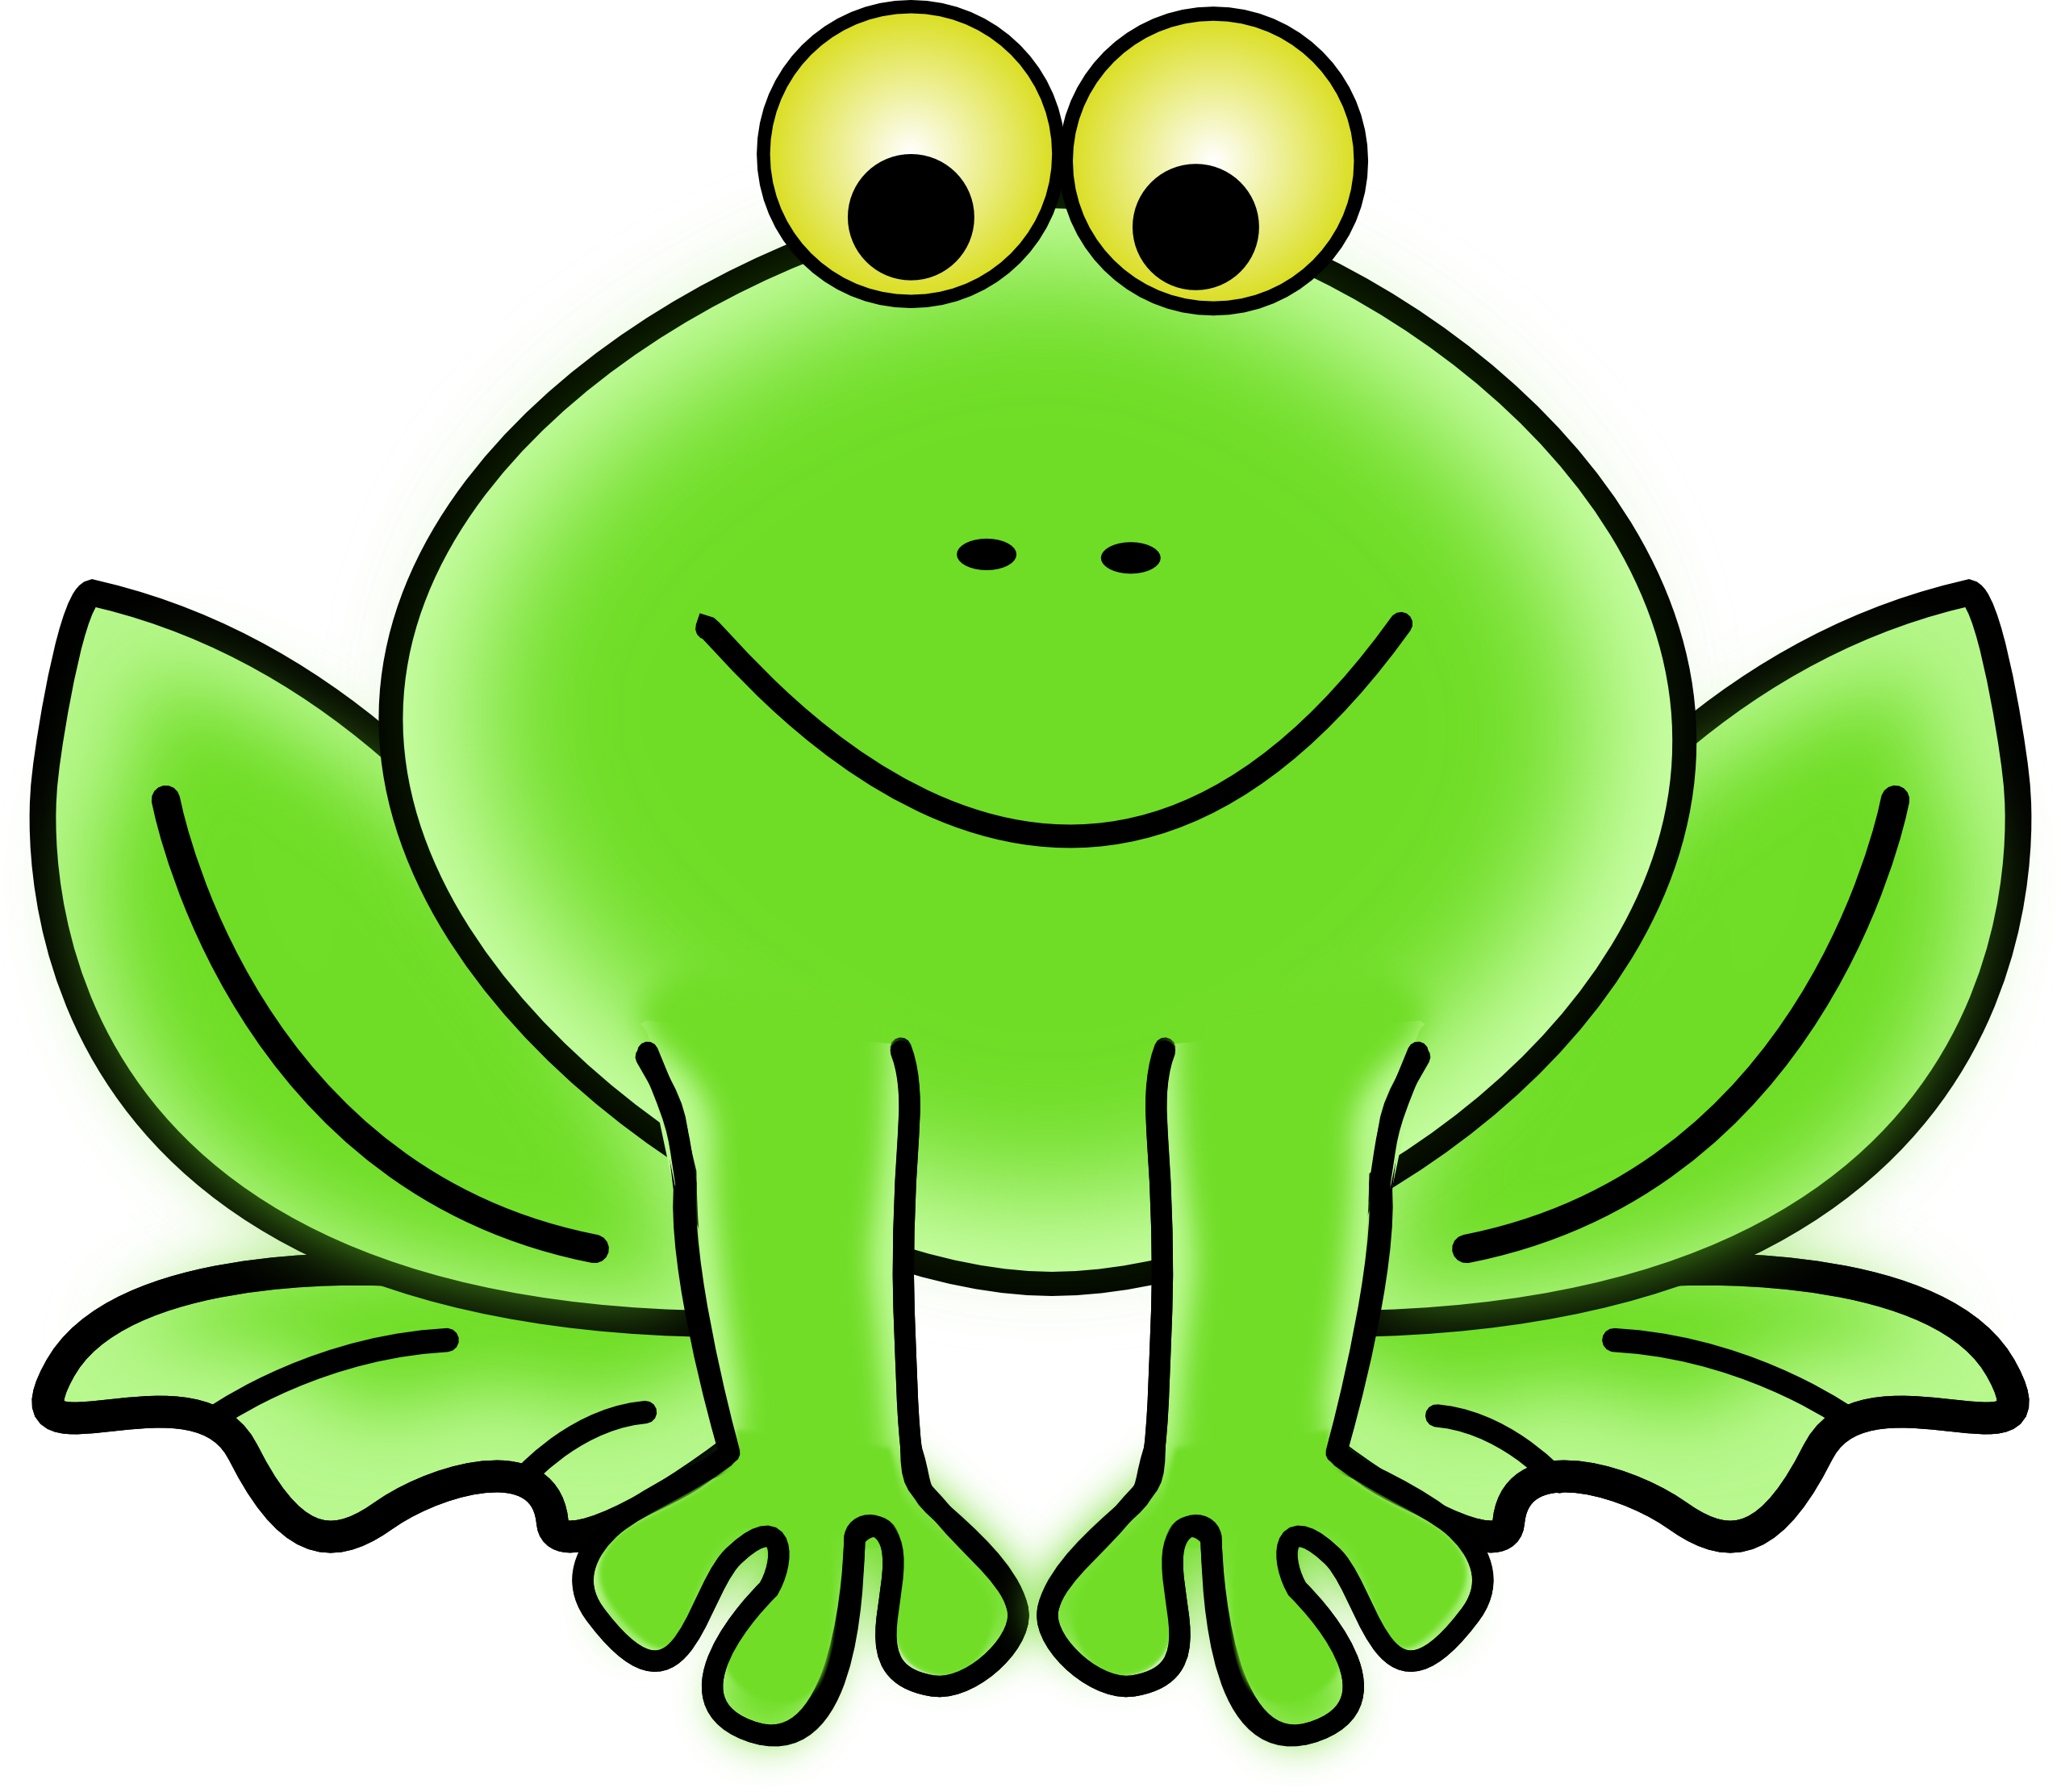 Frog clipart #10, Download drawings